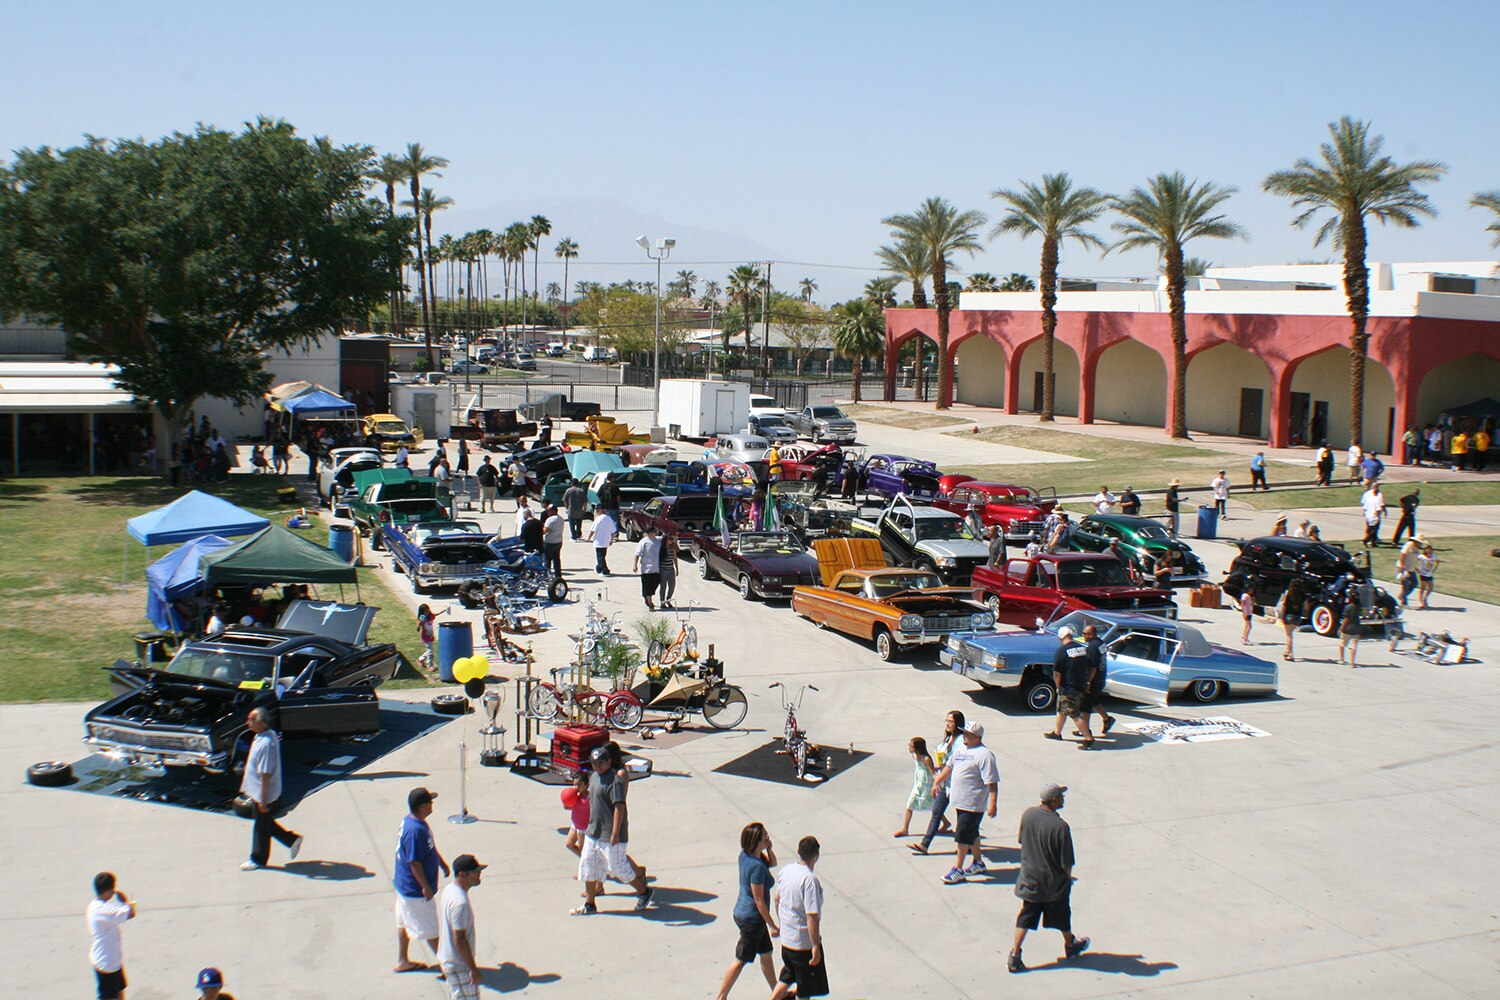 city-cruisers-annual-car-show-crowd-shot1